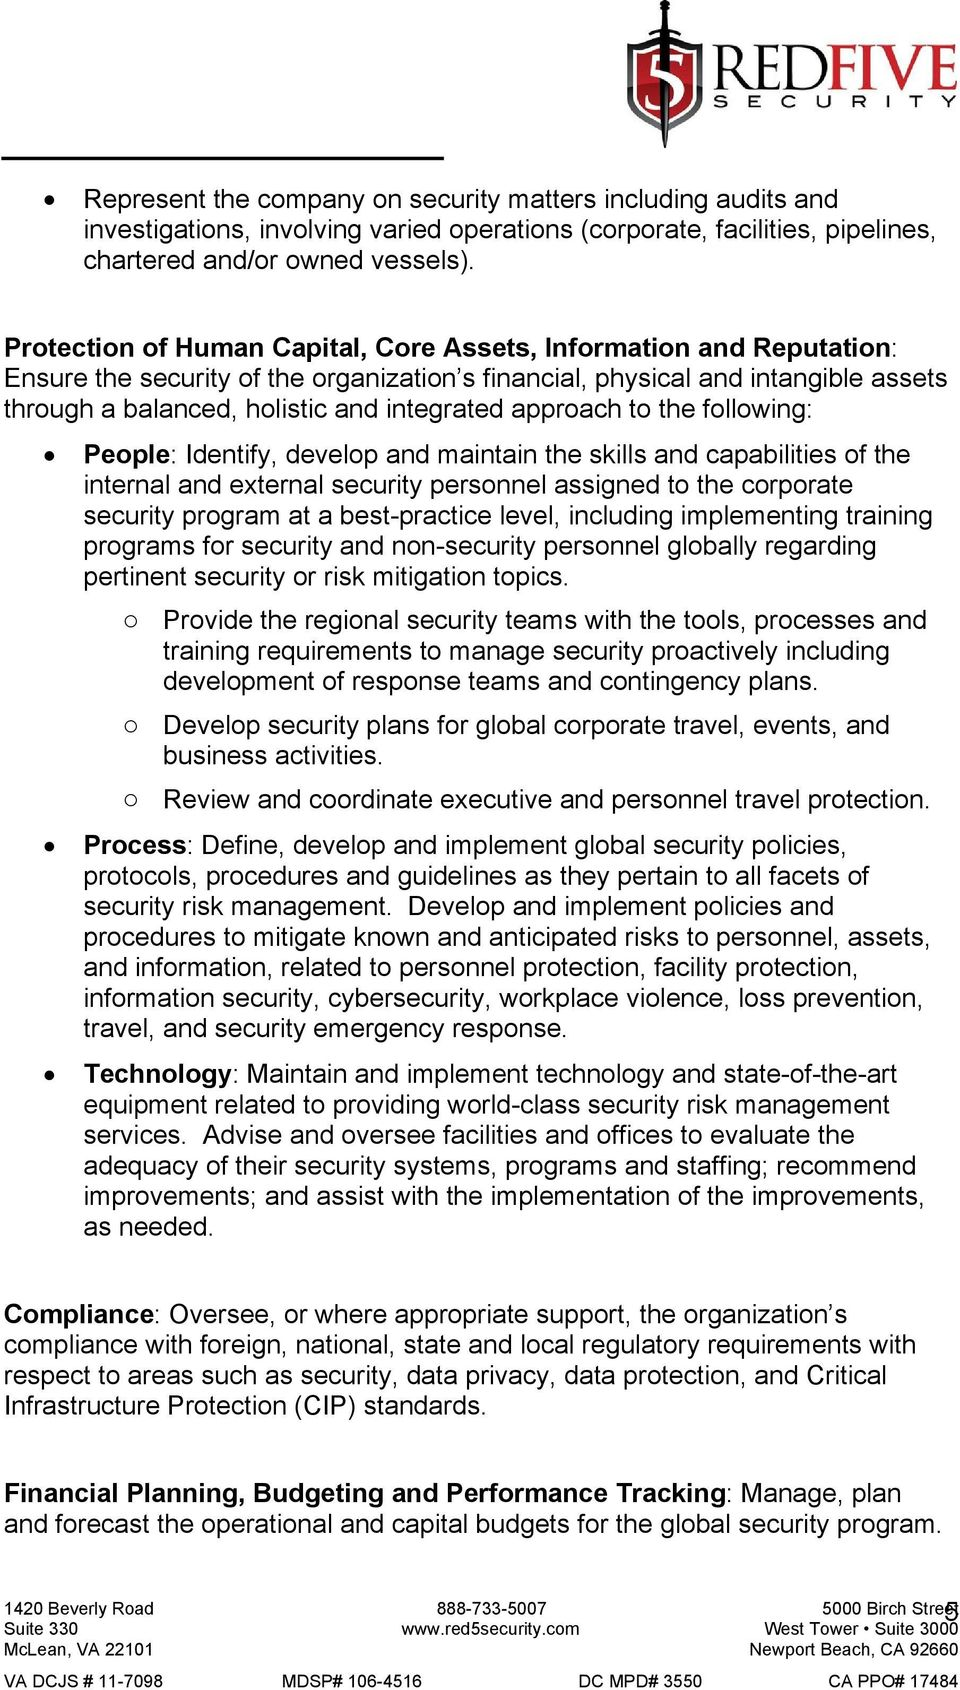 approach to the following: People: Identify, develop and maintain the skills and capabilities of the internal and external security personnel assigned to the corporate security program at a best